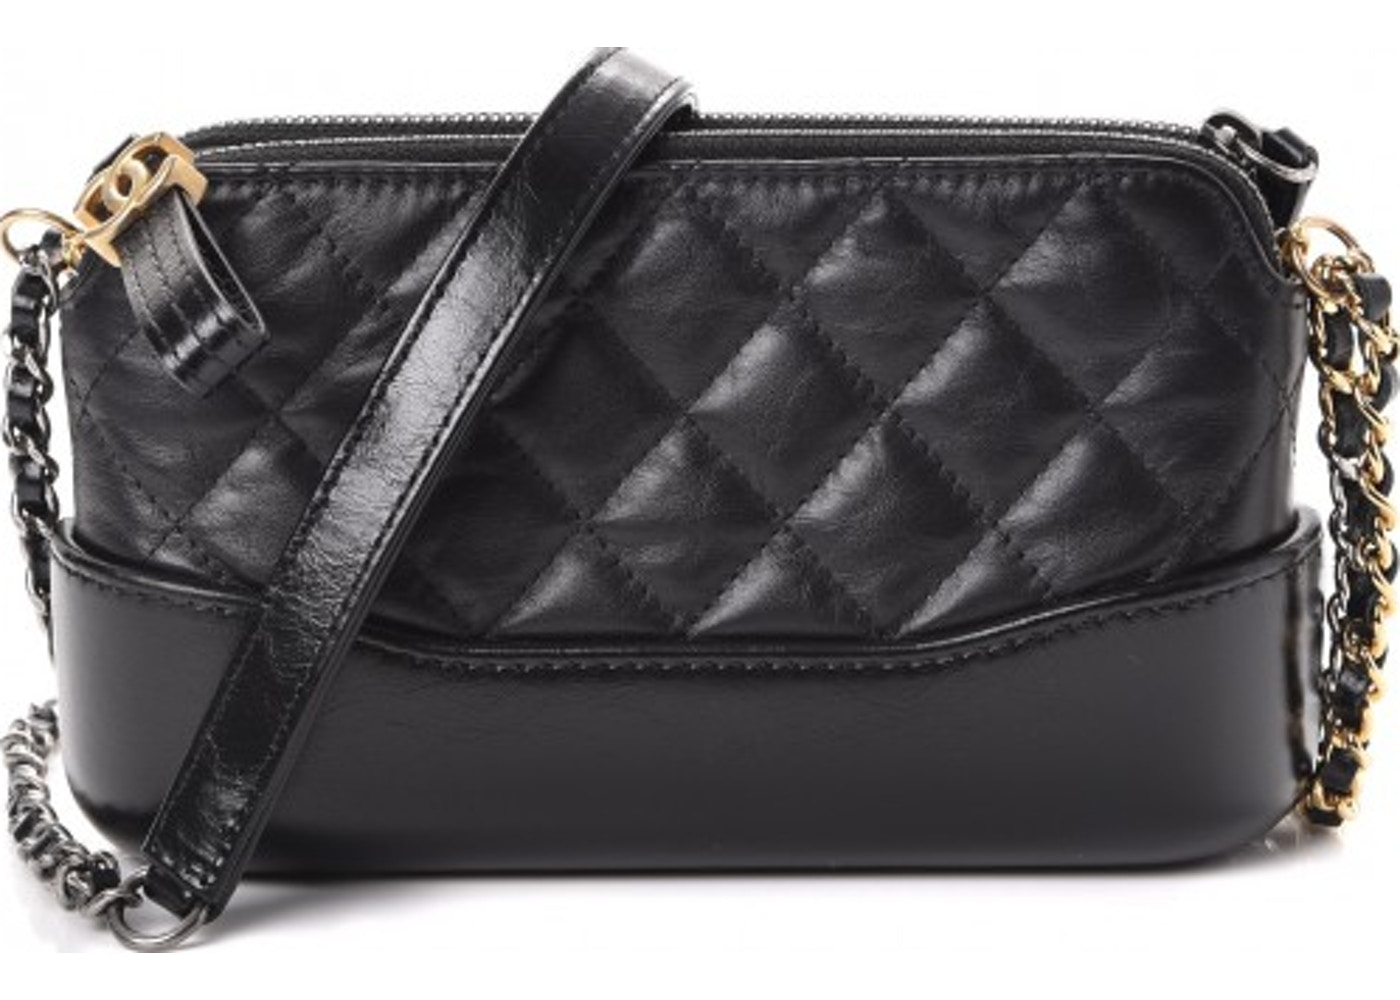 56683b95f298 Chanel Gabrielle Clutch With Chain Quilted Diamond Small Black. Quilted  Diamond Small Black